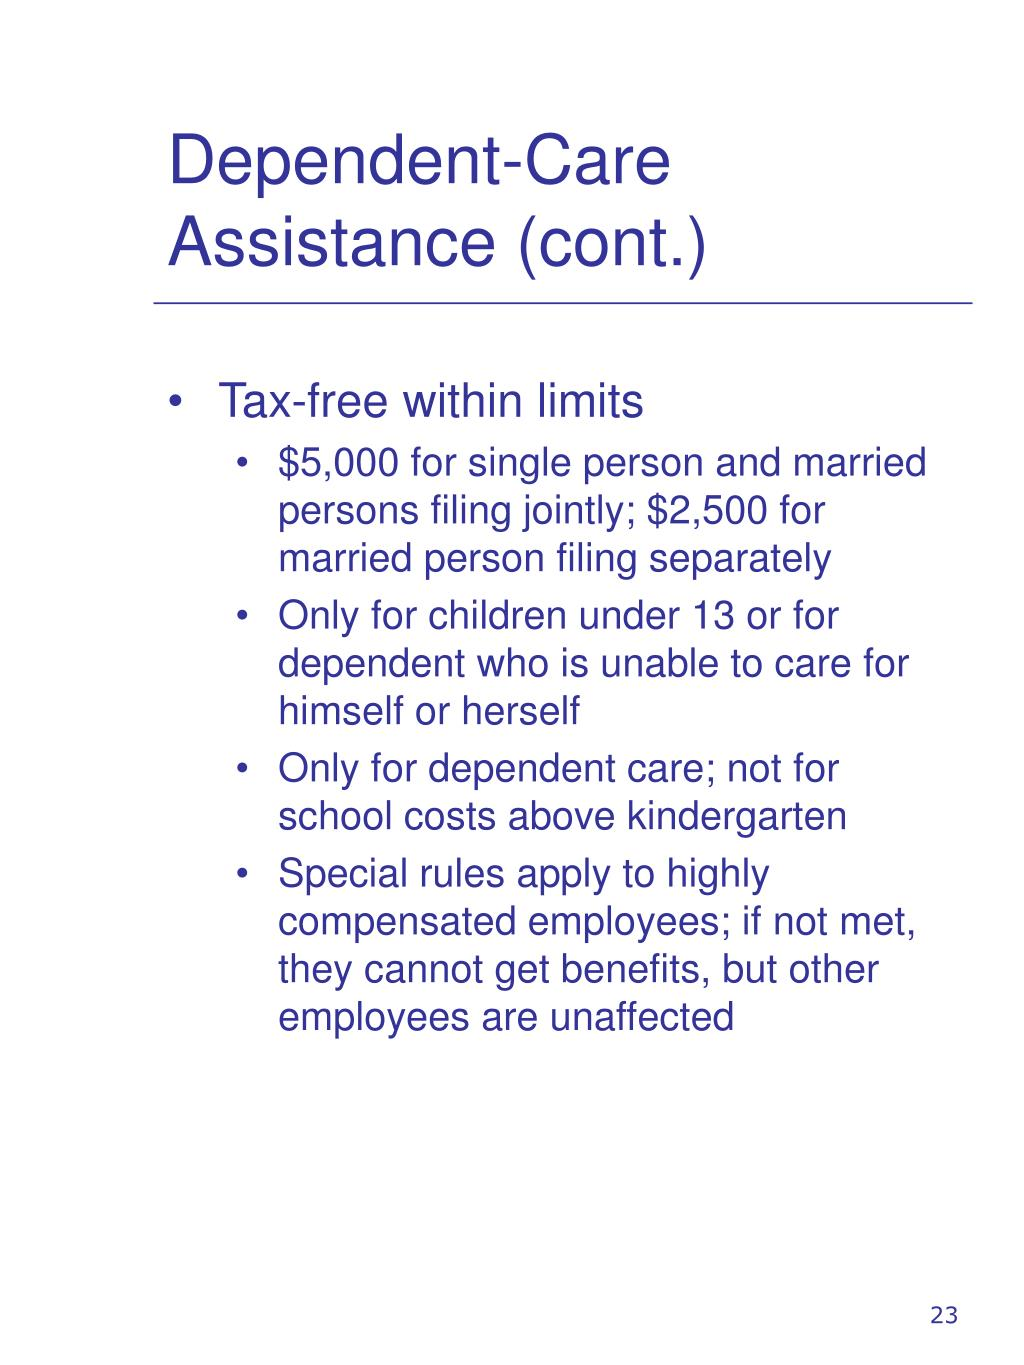 Dependent-Care Assistance (cont.)